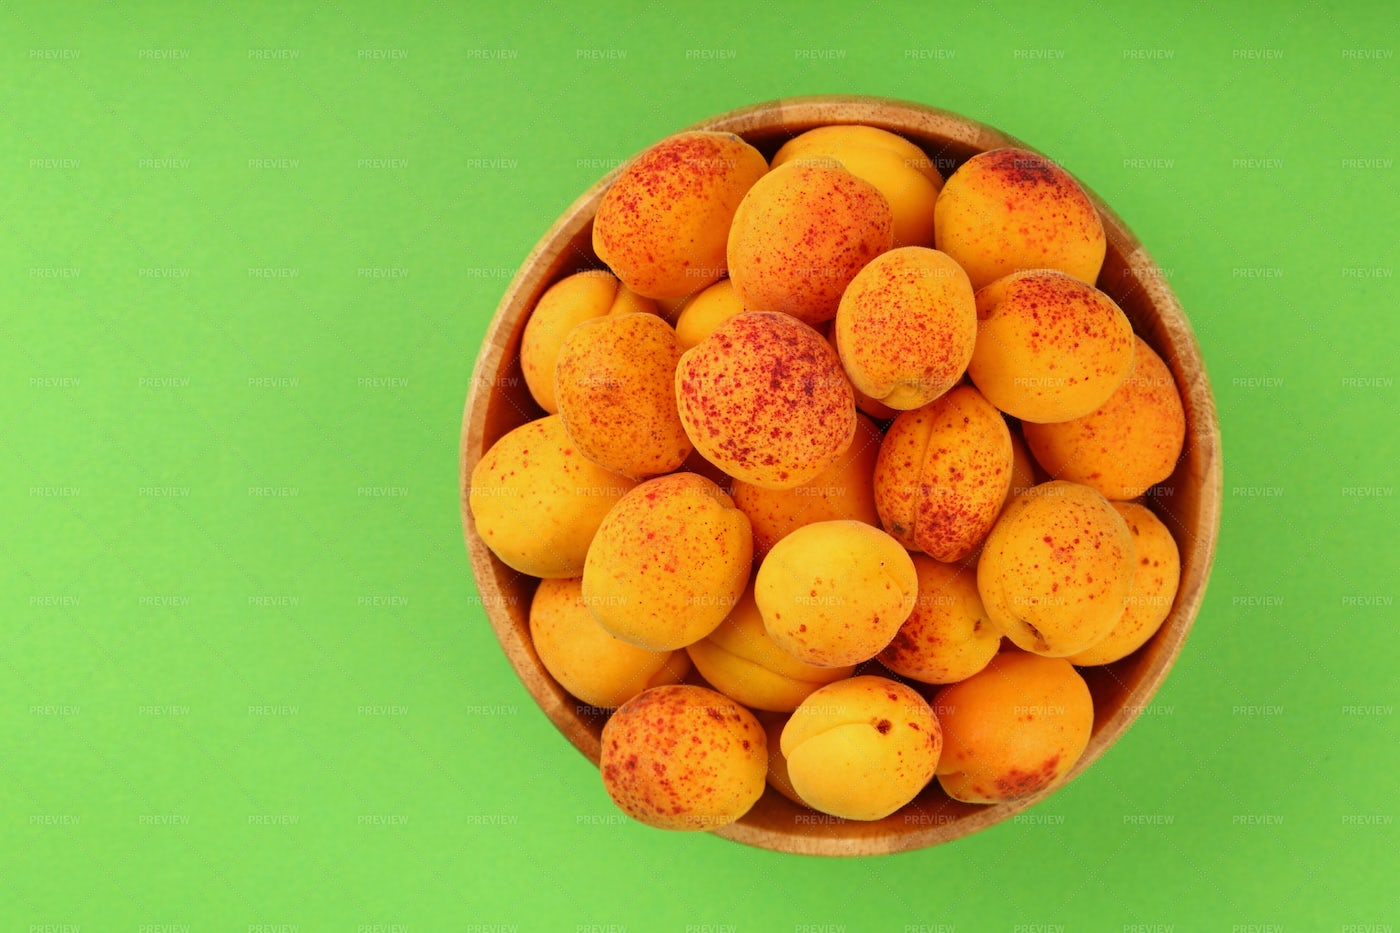 Fresh Apricots In A Bowl: Stock Photos